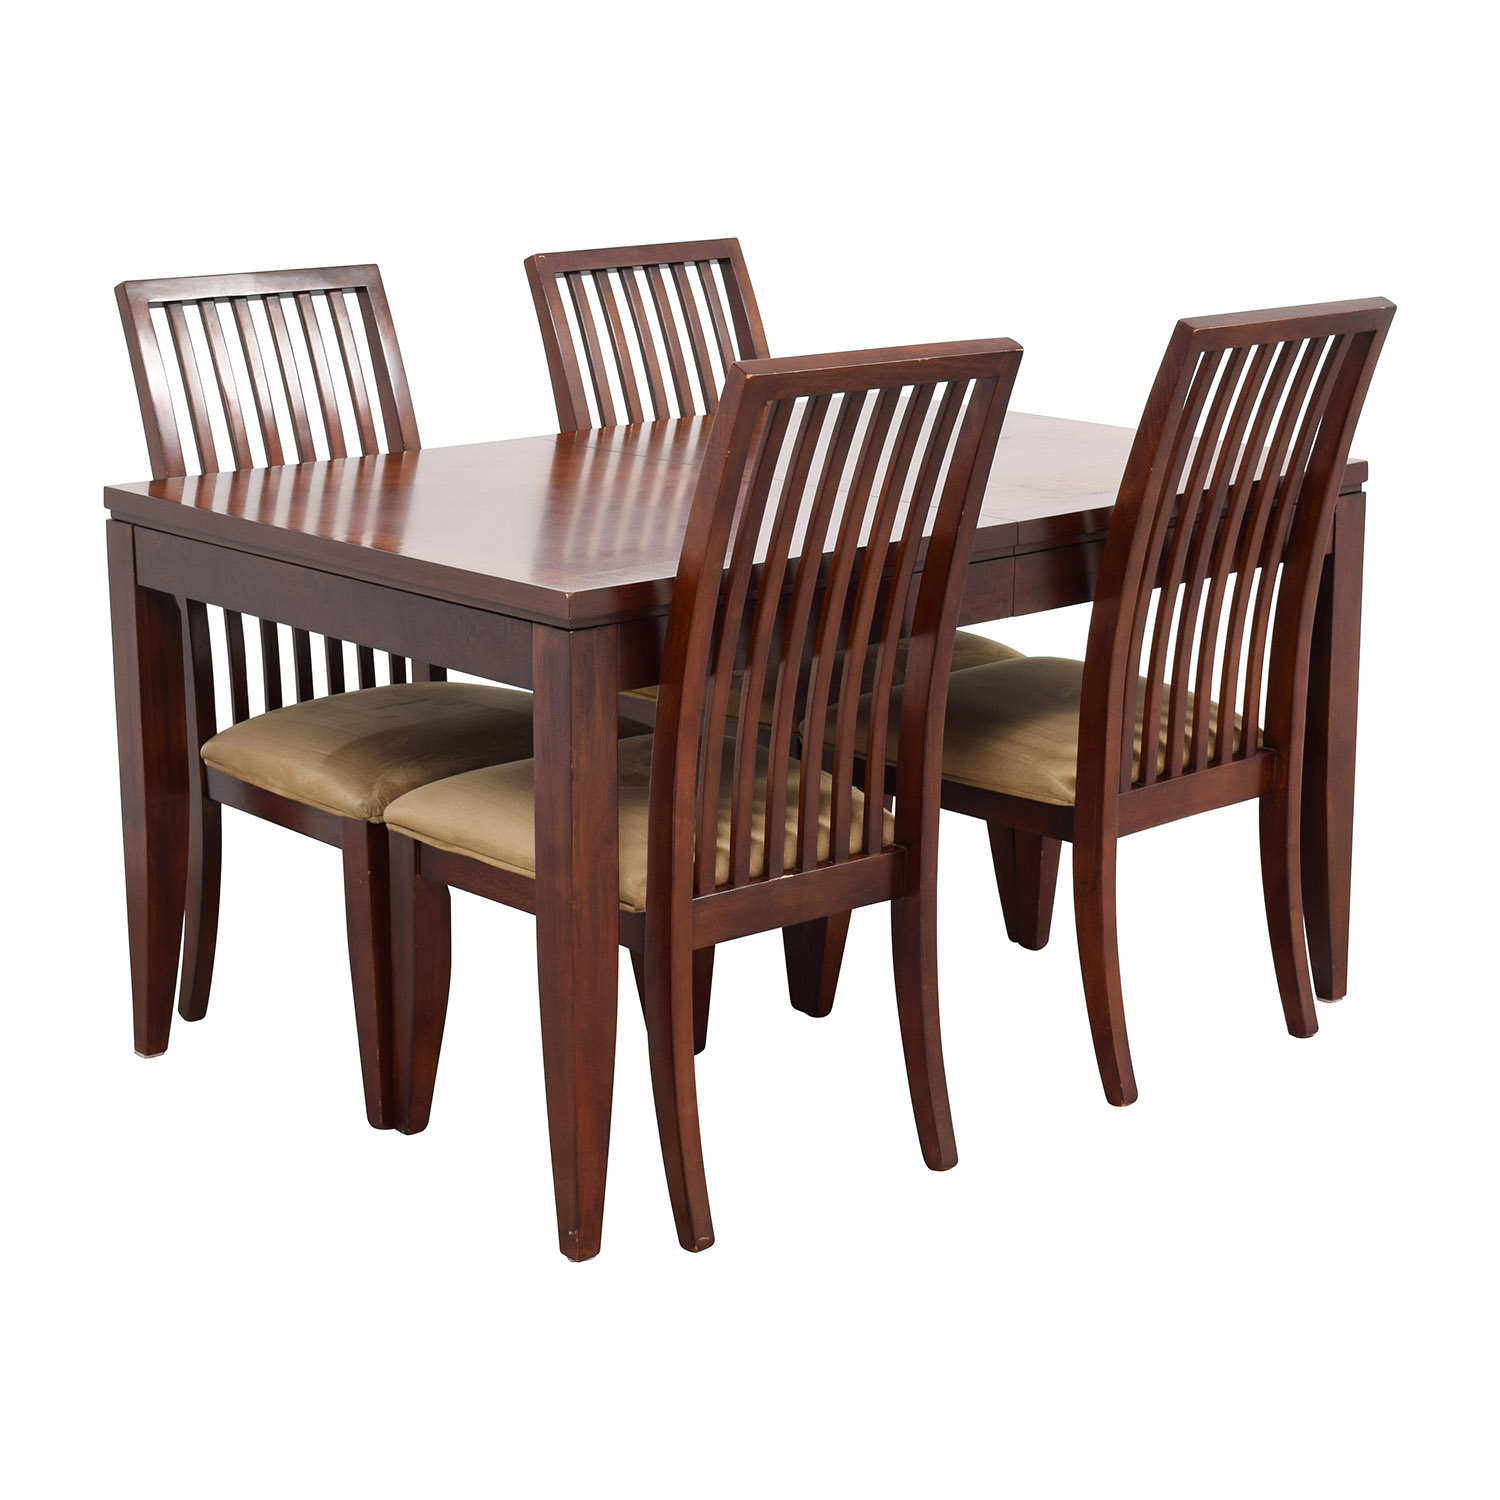 Macys Macys Metropolitan Dining Set with Four Chairs Brown